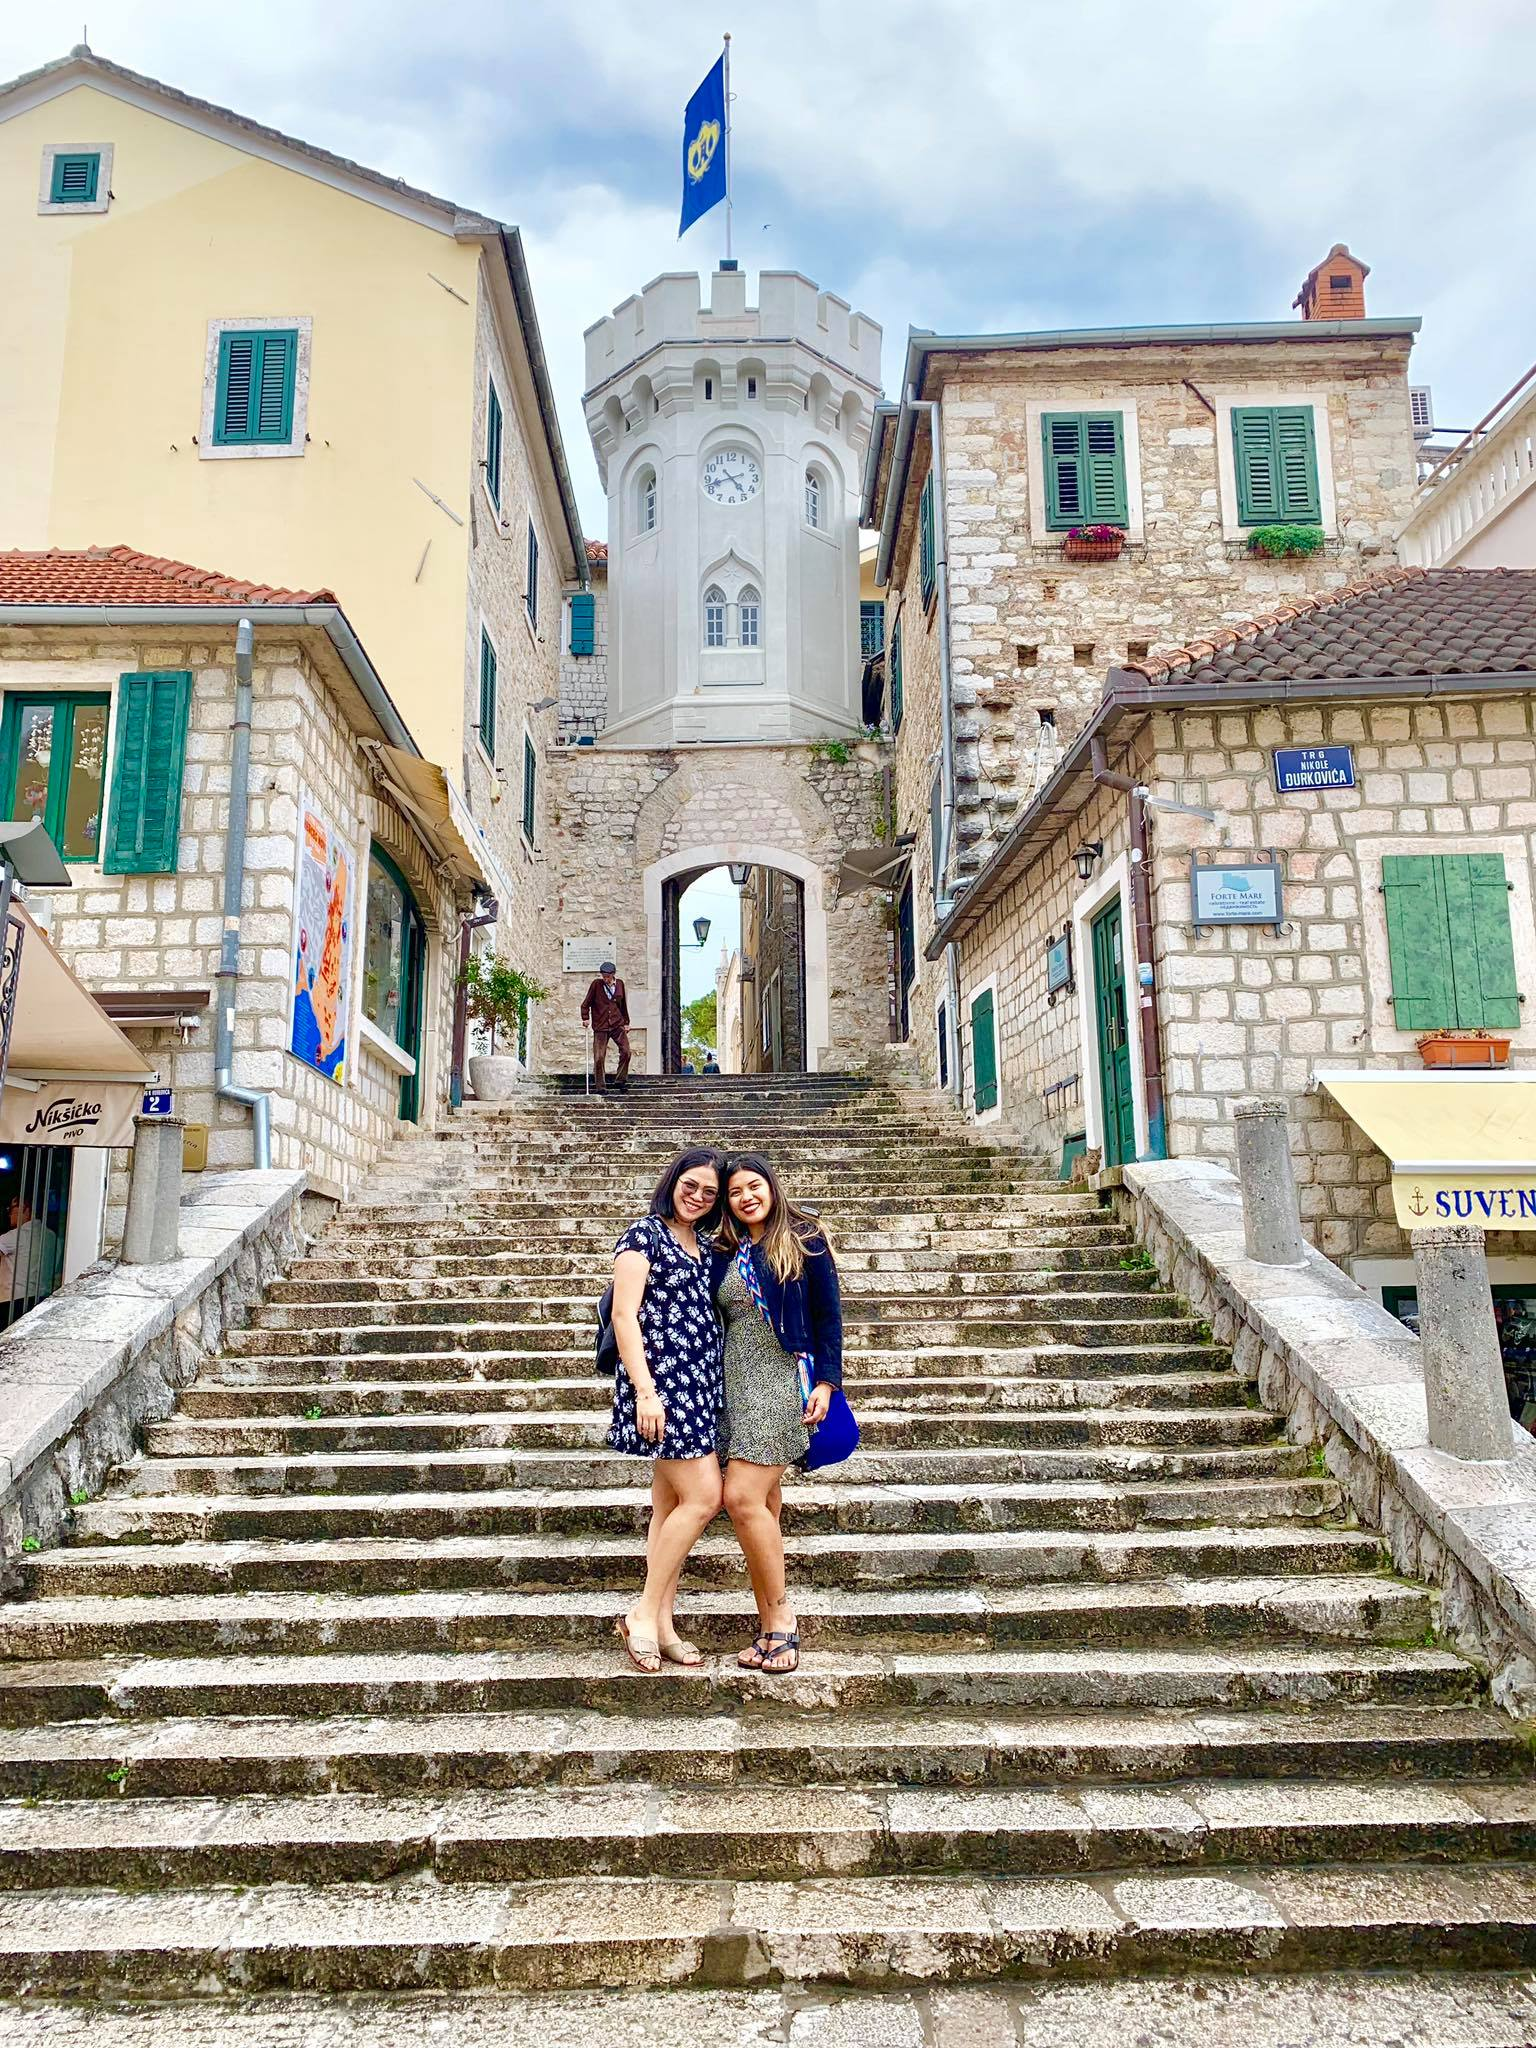 Expat Life in Montenegro Day 3 We have our first visitor already in our new home here in Herceg Novi1.jpg